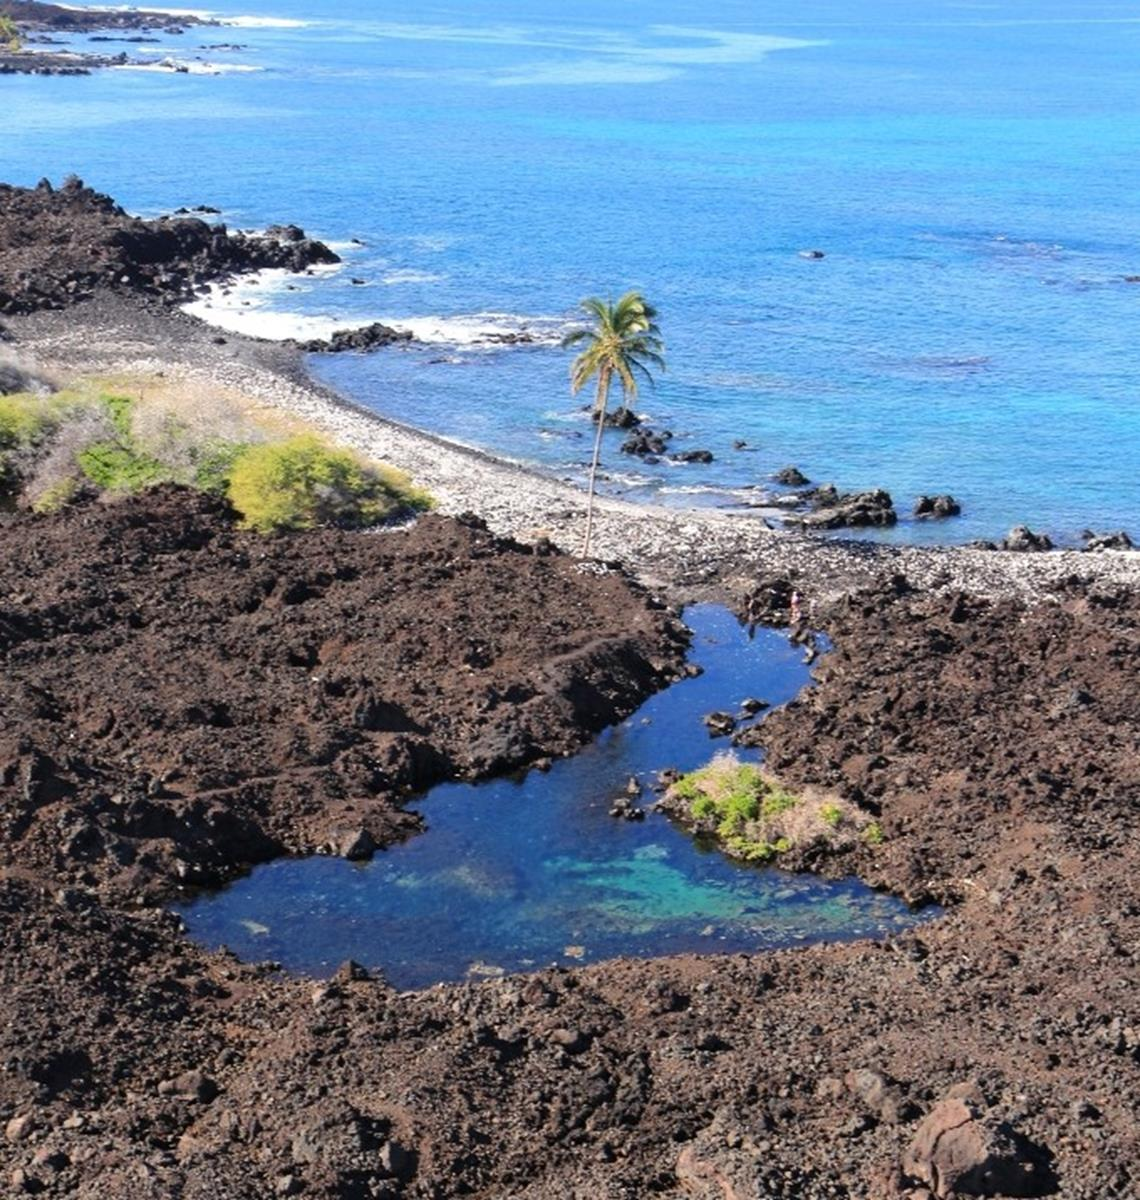 Cove at Kona Beach. Credit: Big Island Visitors Bureau (BIVB)/Kirk Lee Aedes Island.